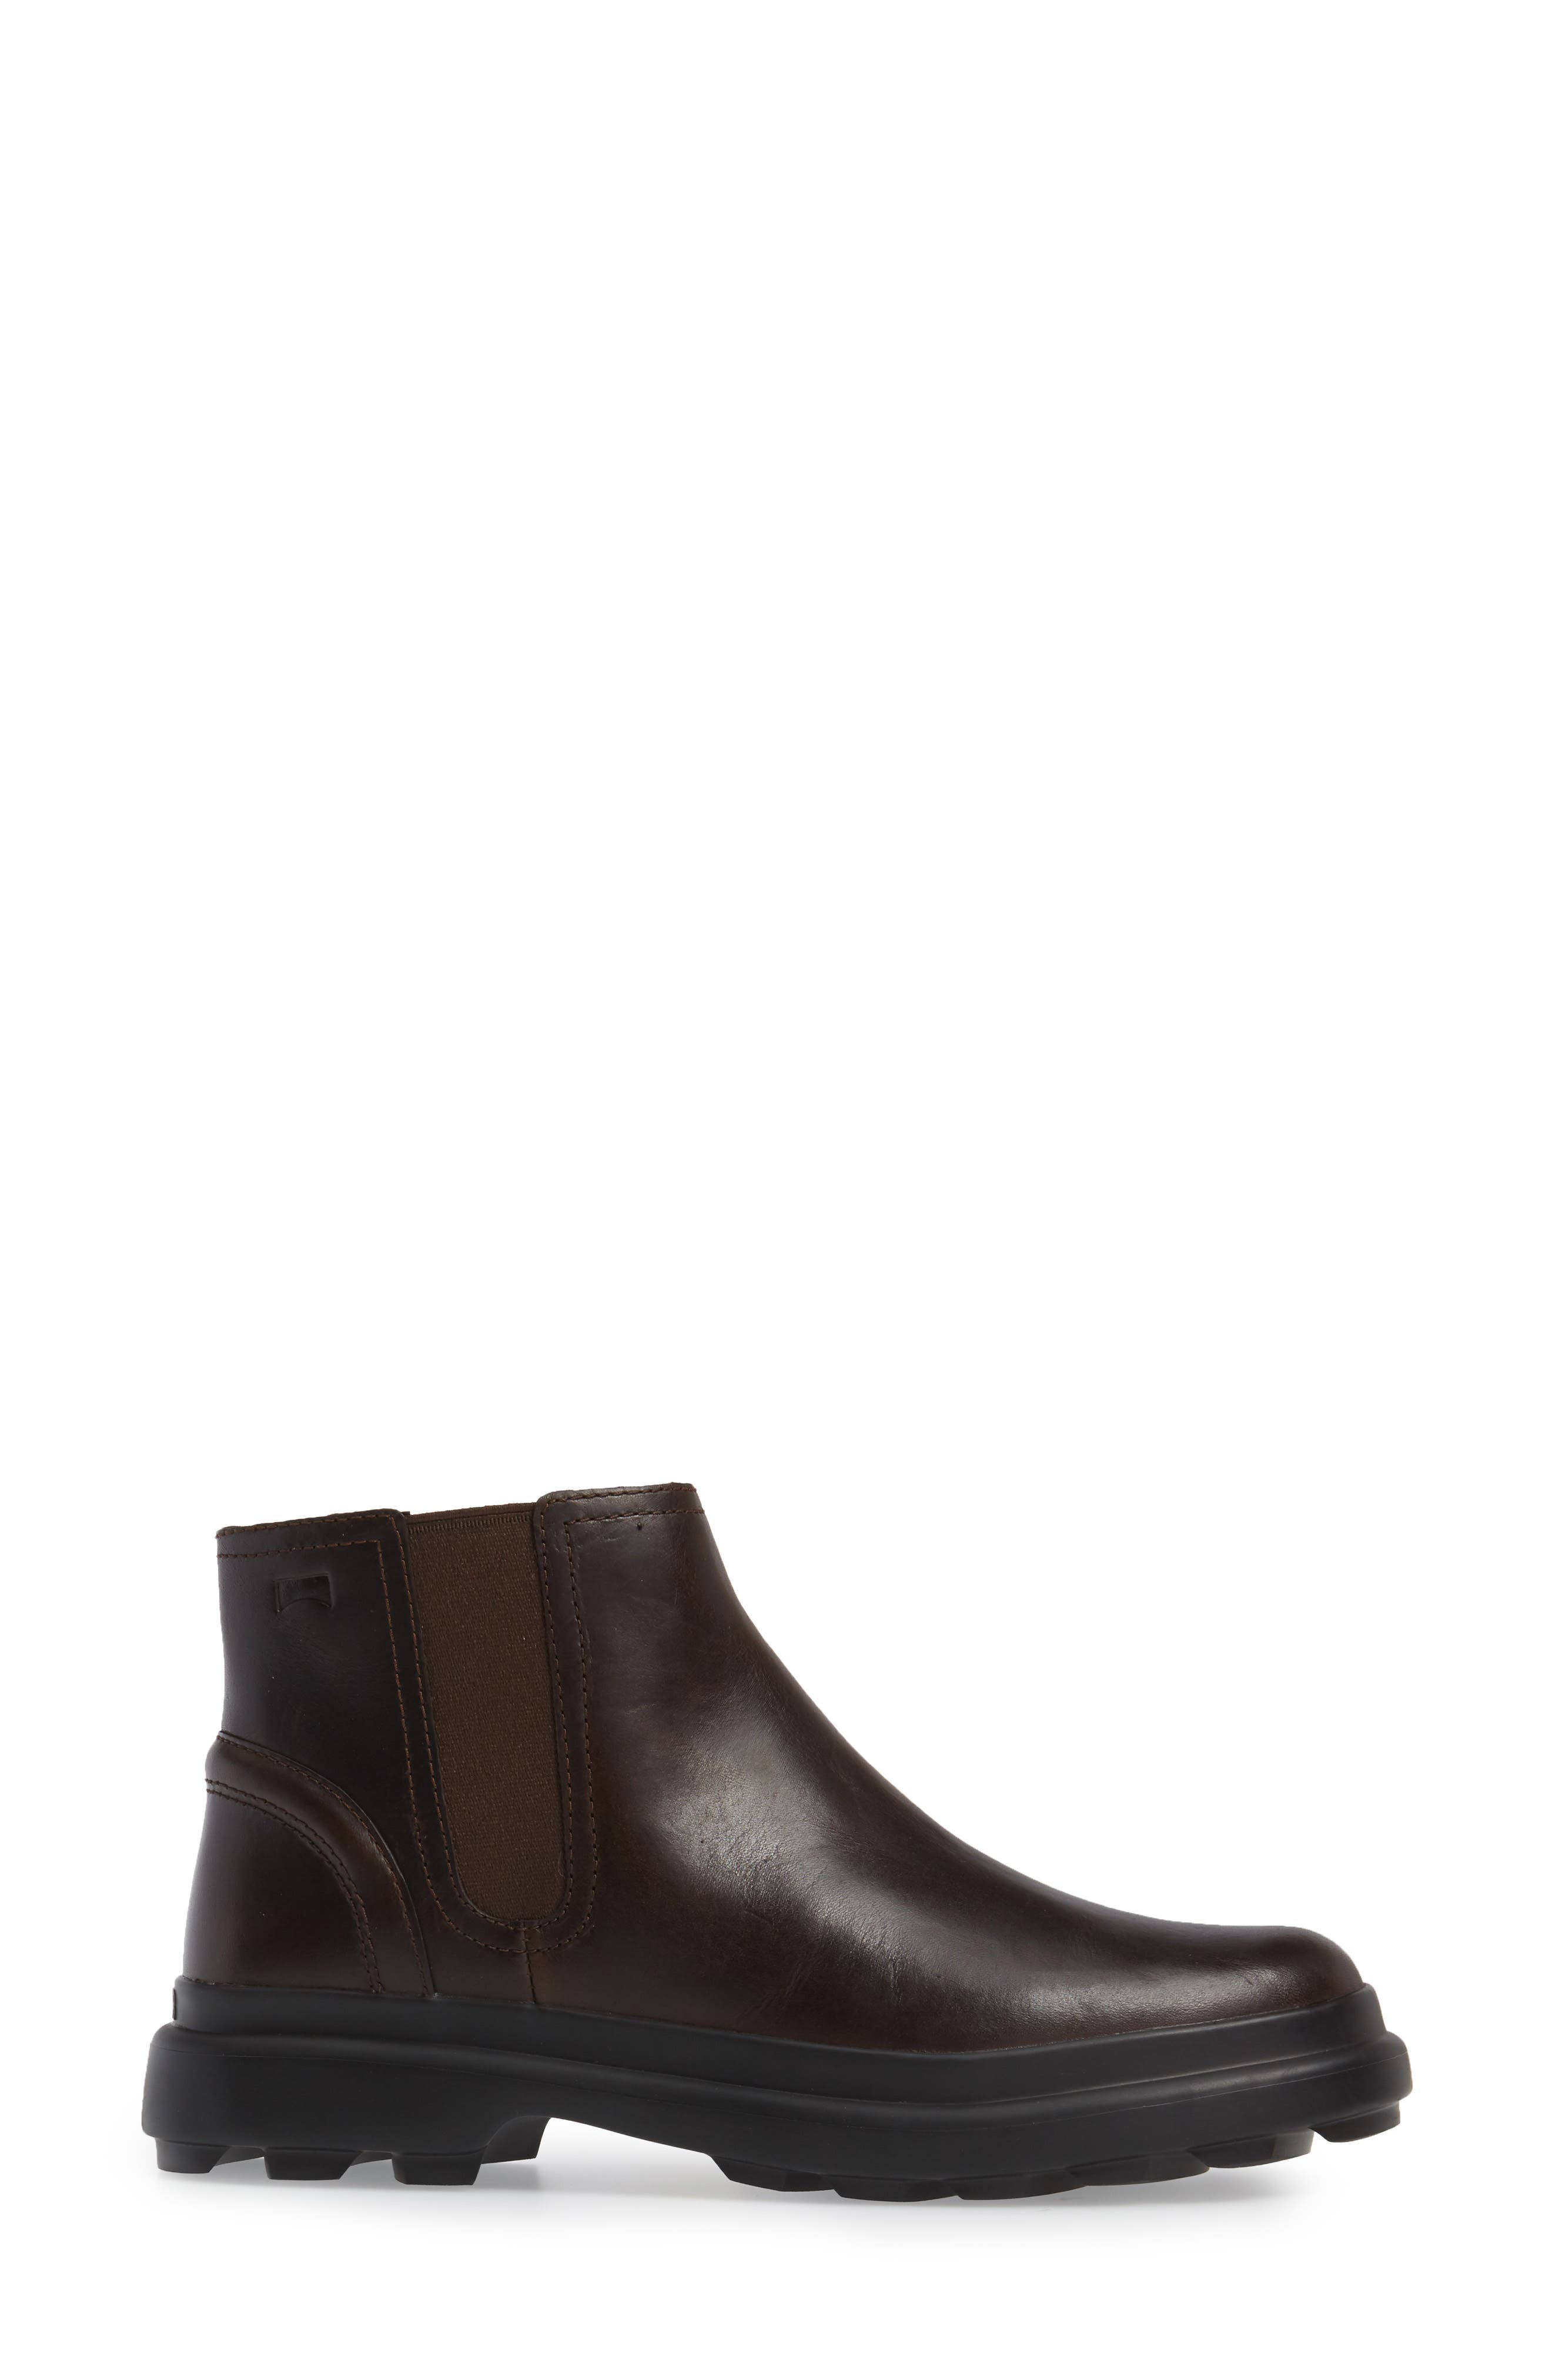 Turtle Lugged Chelsea Boot,                             Alternate thumbnail 3, color,                             Dark Brown Leather